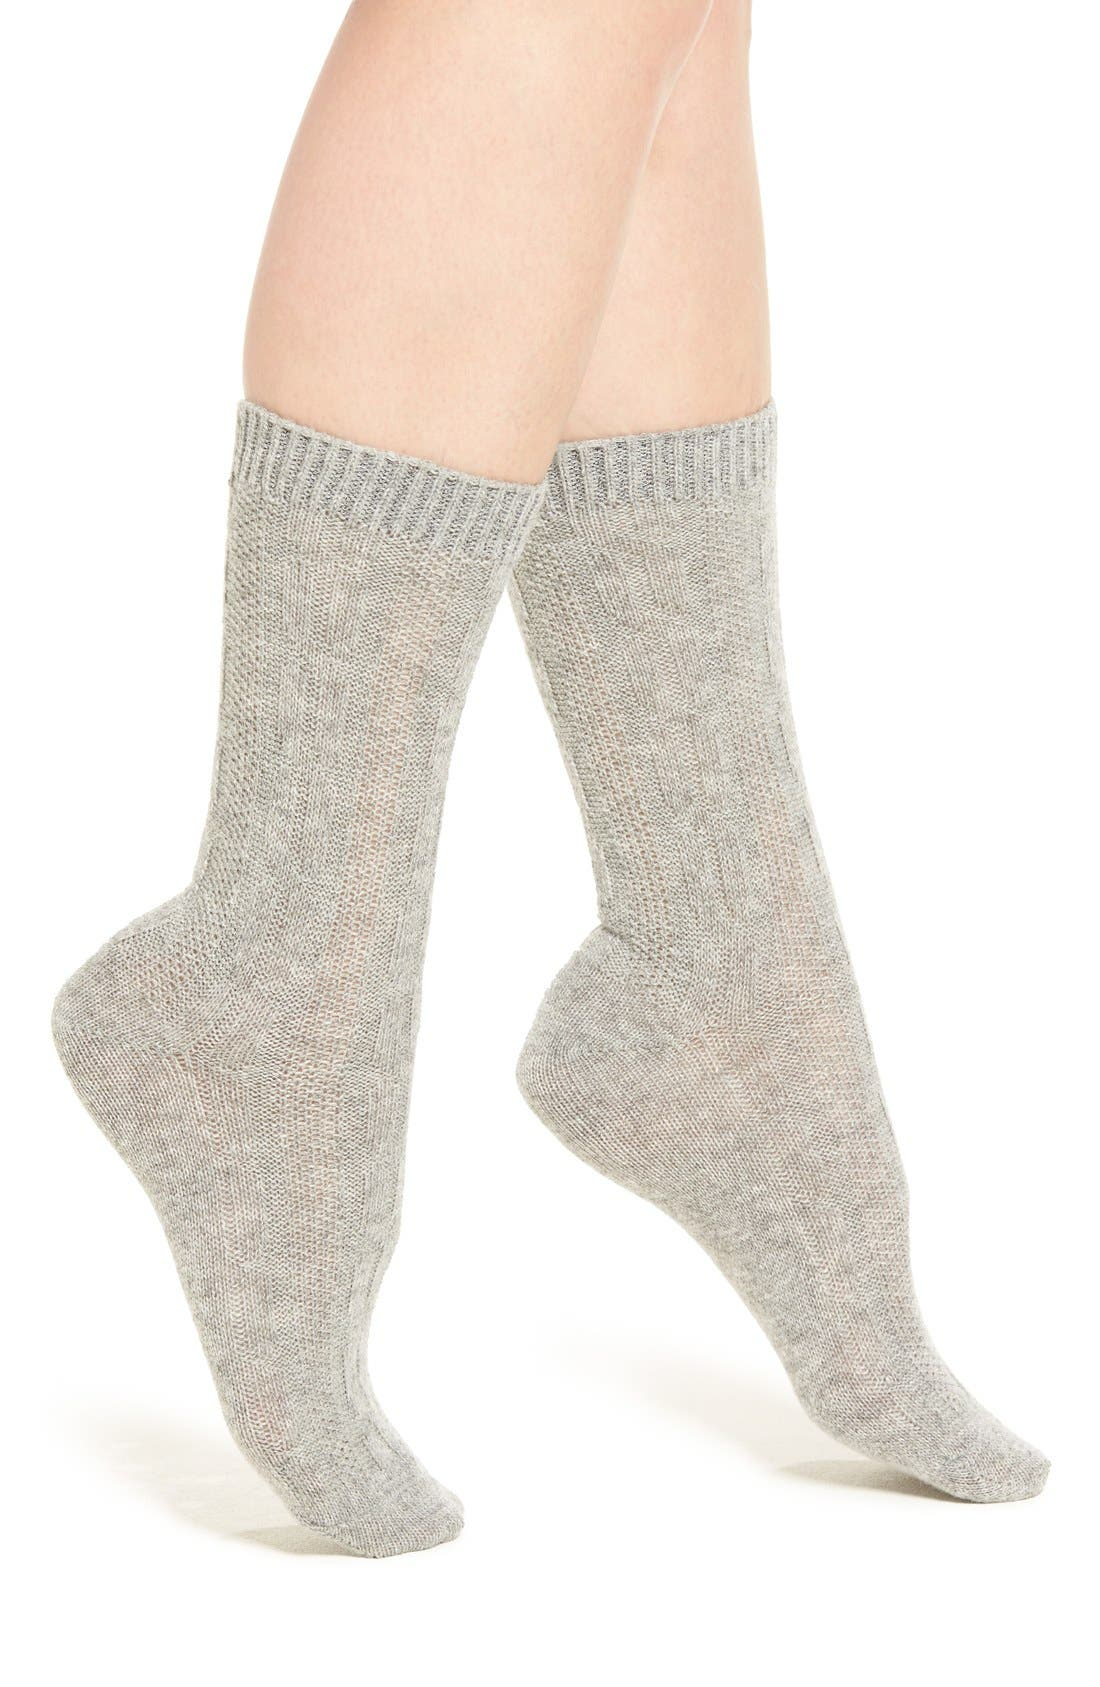 Main Image - Nordstrom 'Luxury' Cable Knit Crew Socks